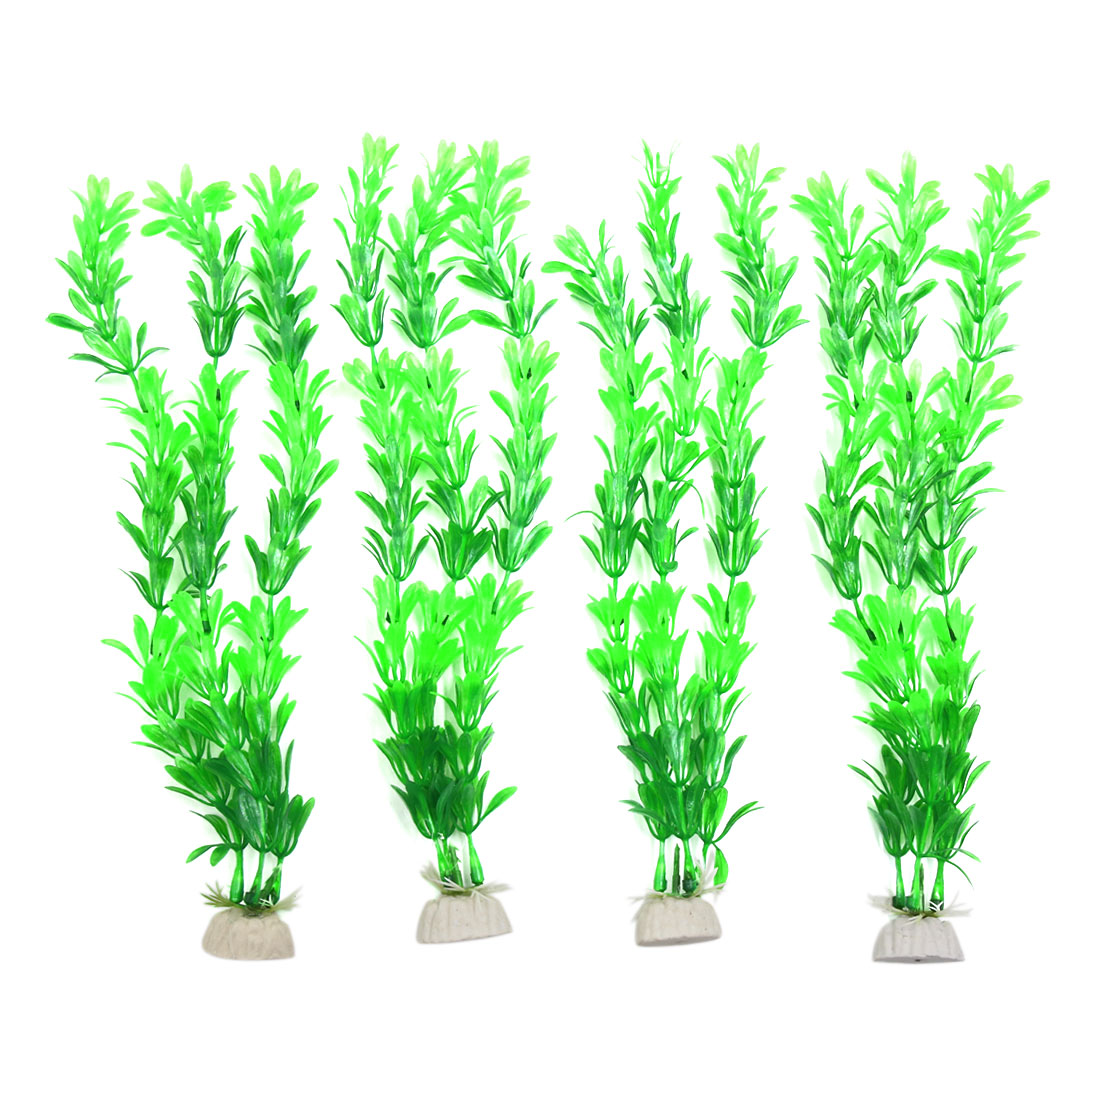 4pcs Plastic Aquarium Fish Tank Aquatic Underwater Plant Ornament